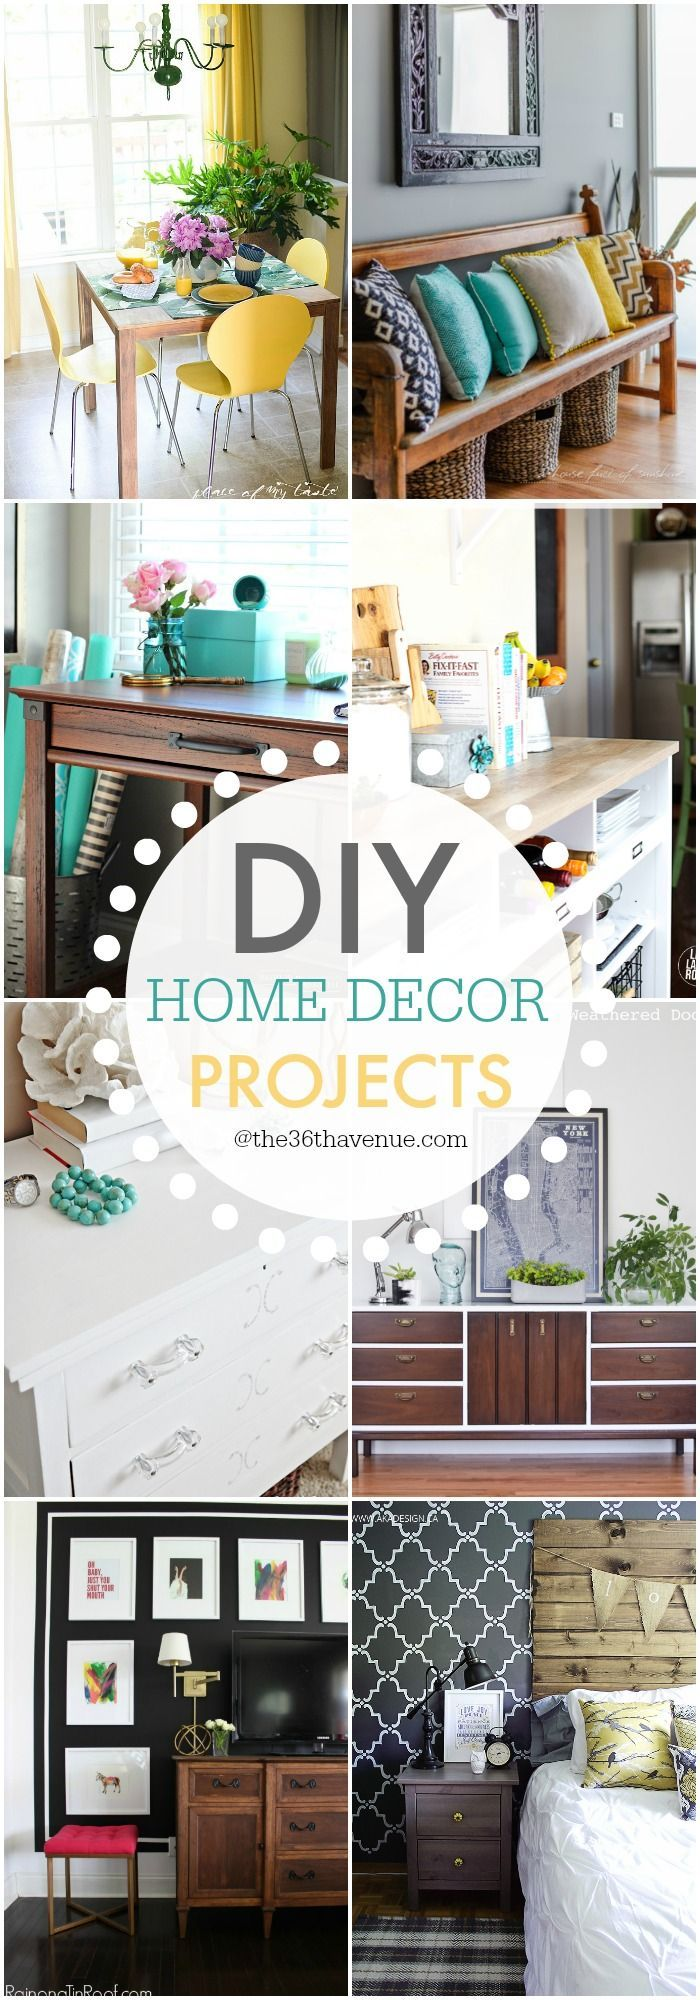 Best Decor Hacks Diy Home Decor Projects And Ideas At